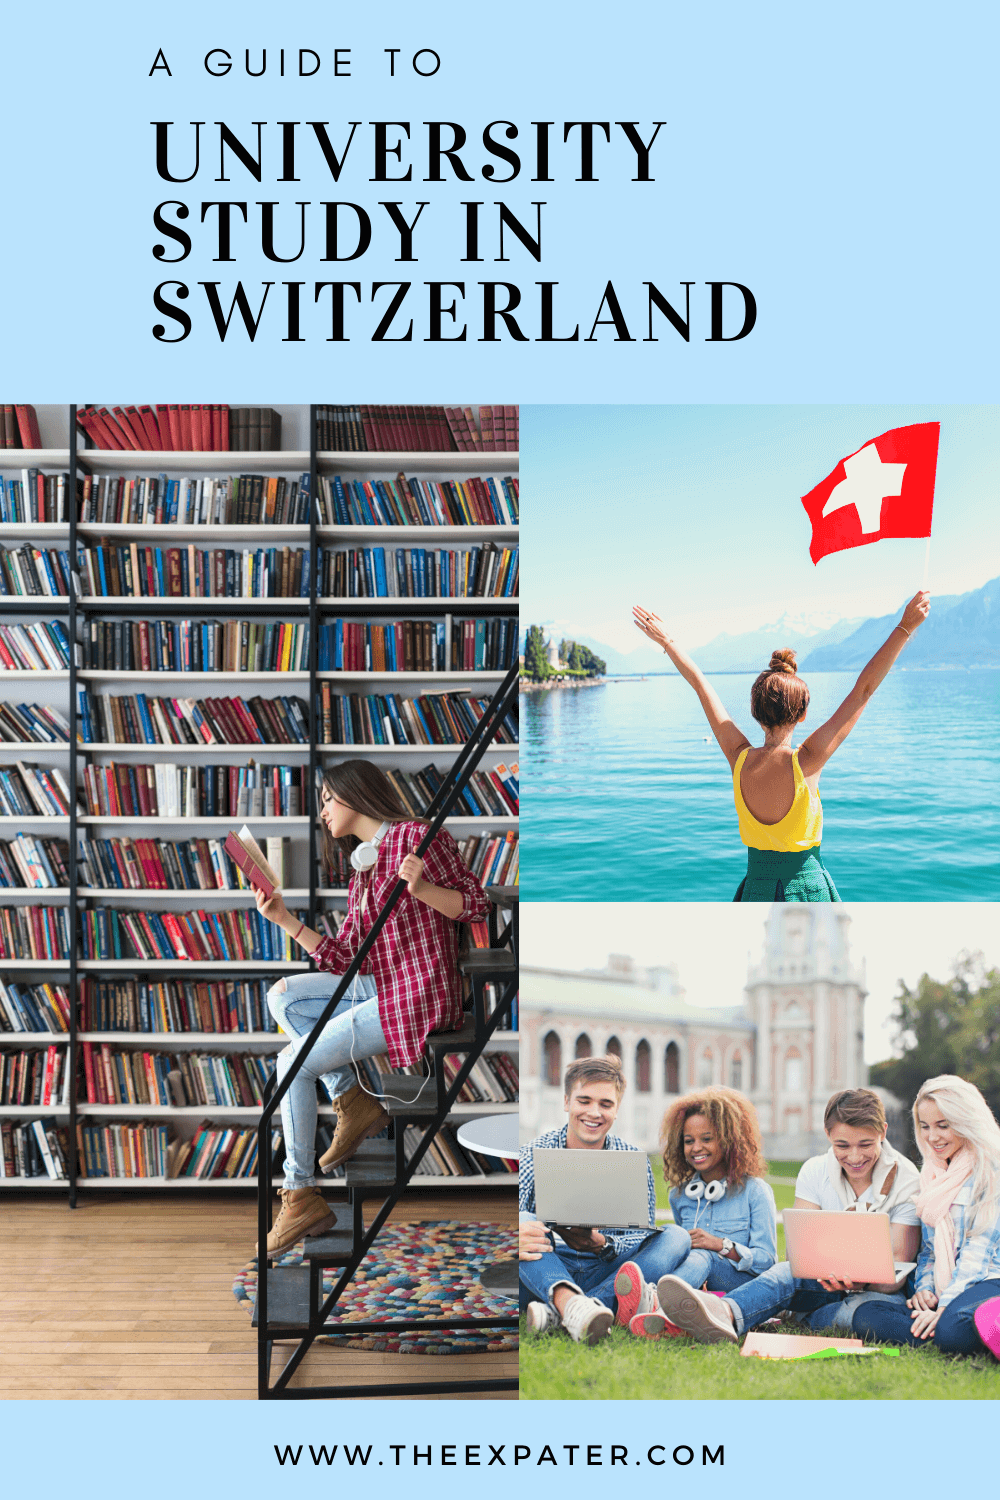 A guide to university study in Switzerland